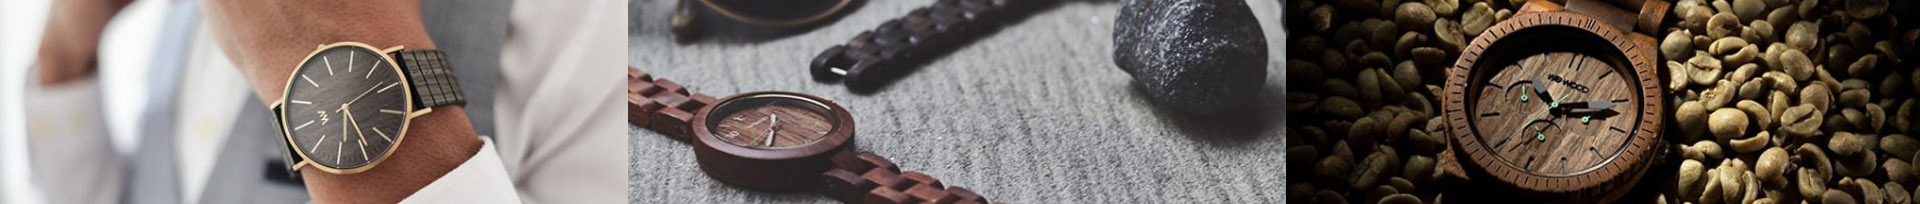 wewood-watches-category-banner1.jpg